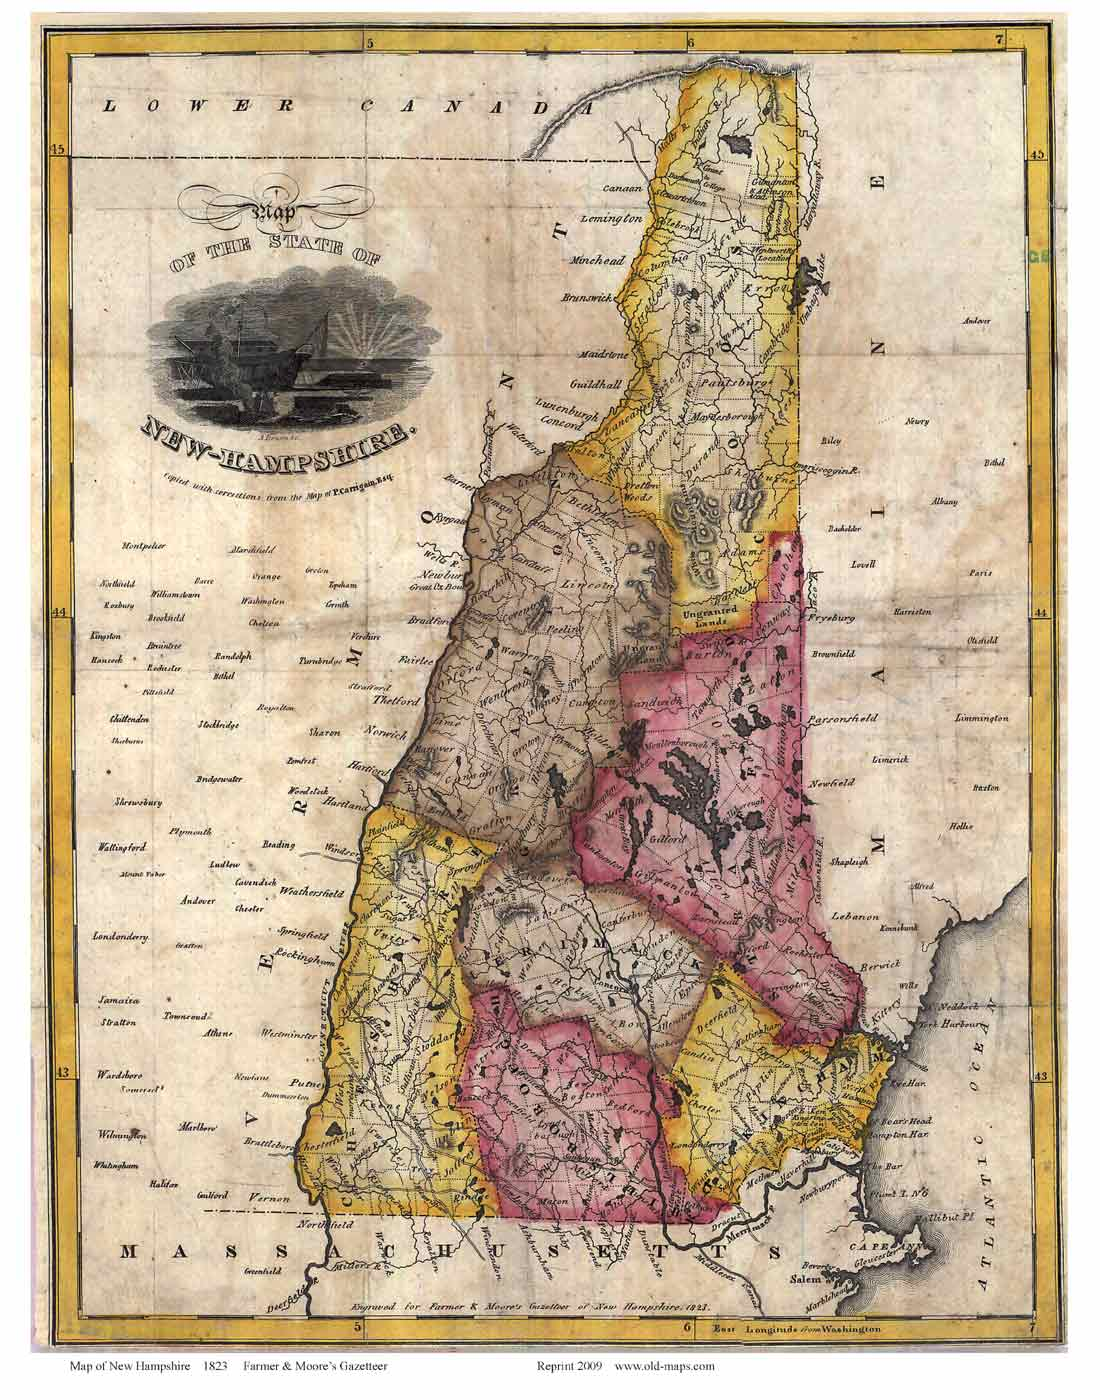 Old State Map Of Nh 1823 Farmer Moore